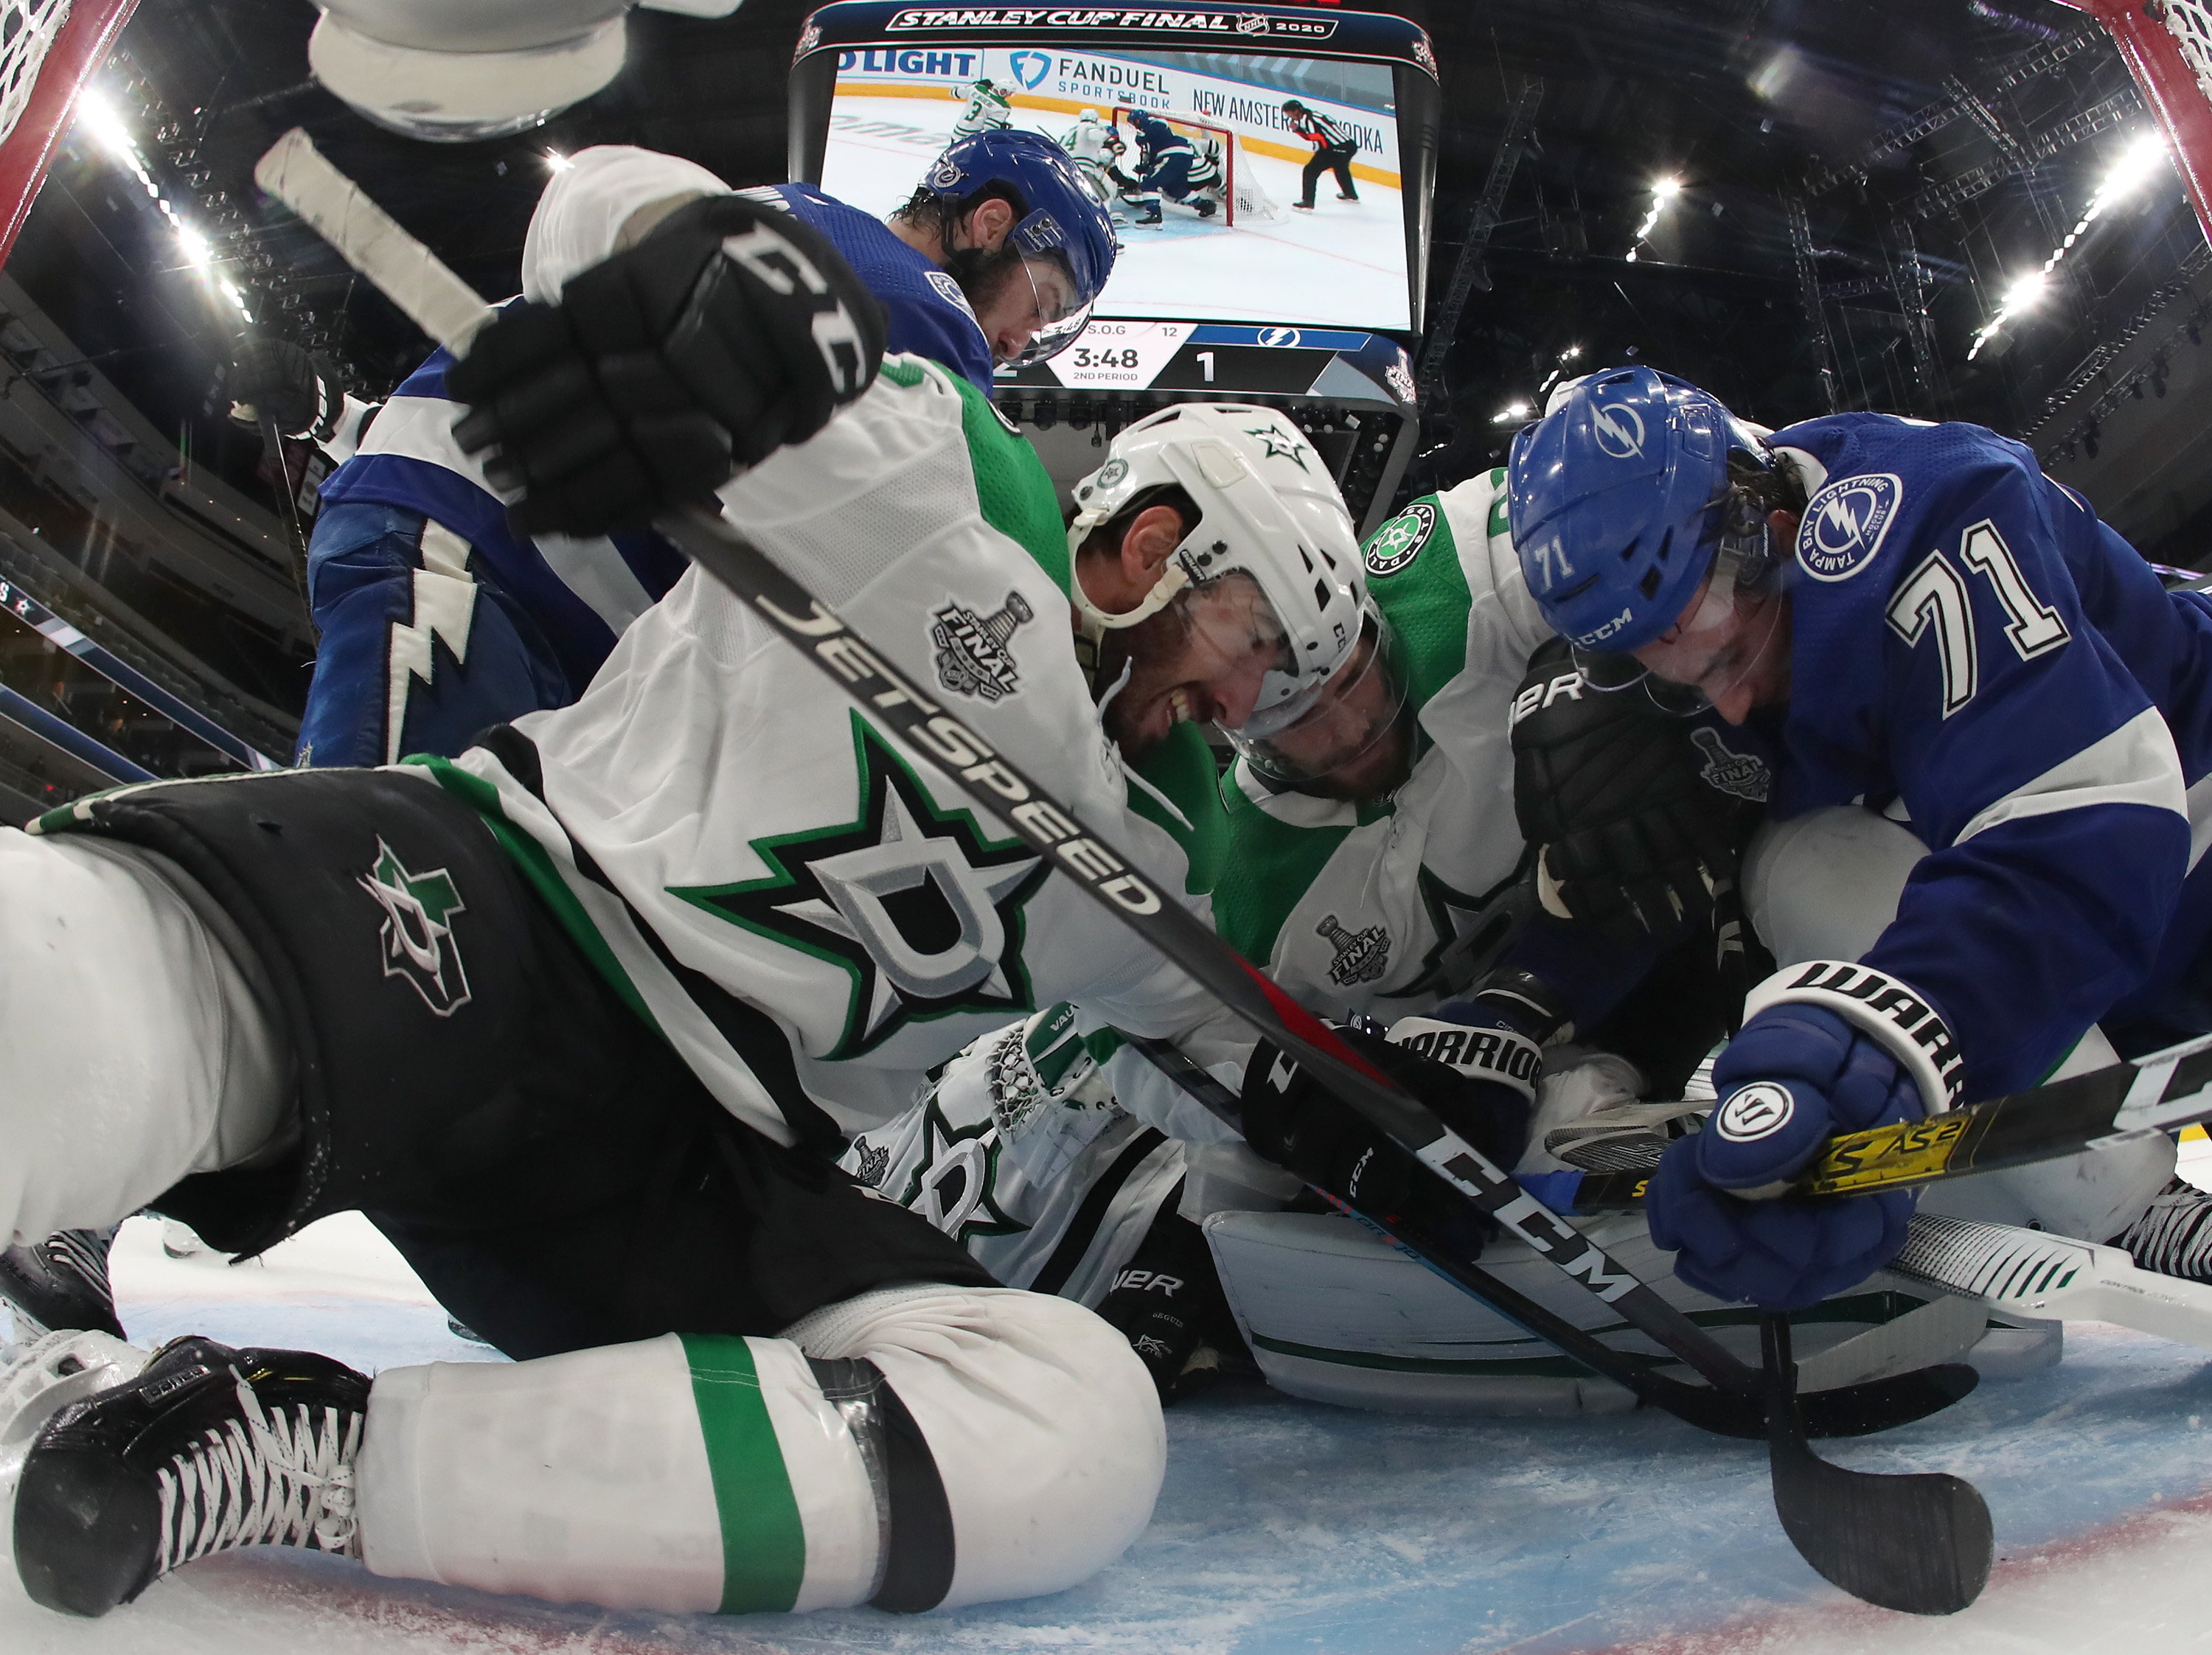 2020 NHL Stanley Cup Final - Game One - Dallas Stars v Tampa Bay Lightning